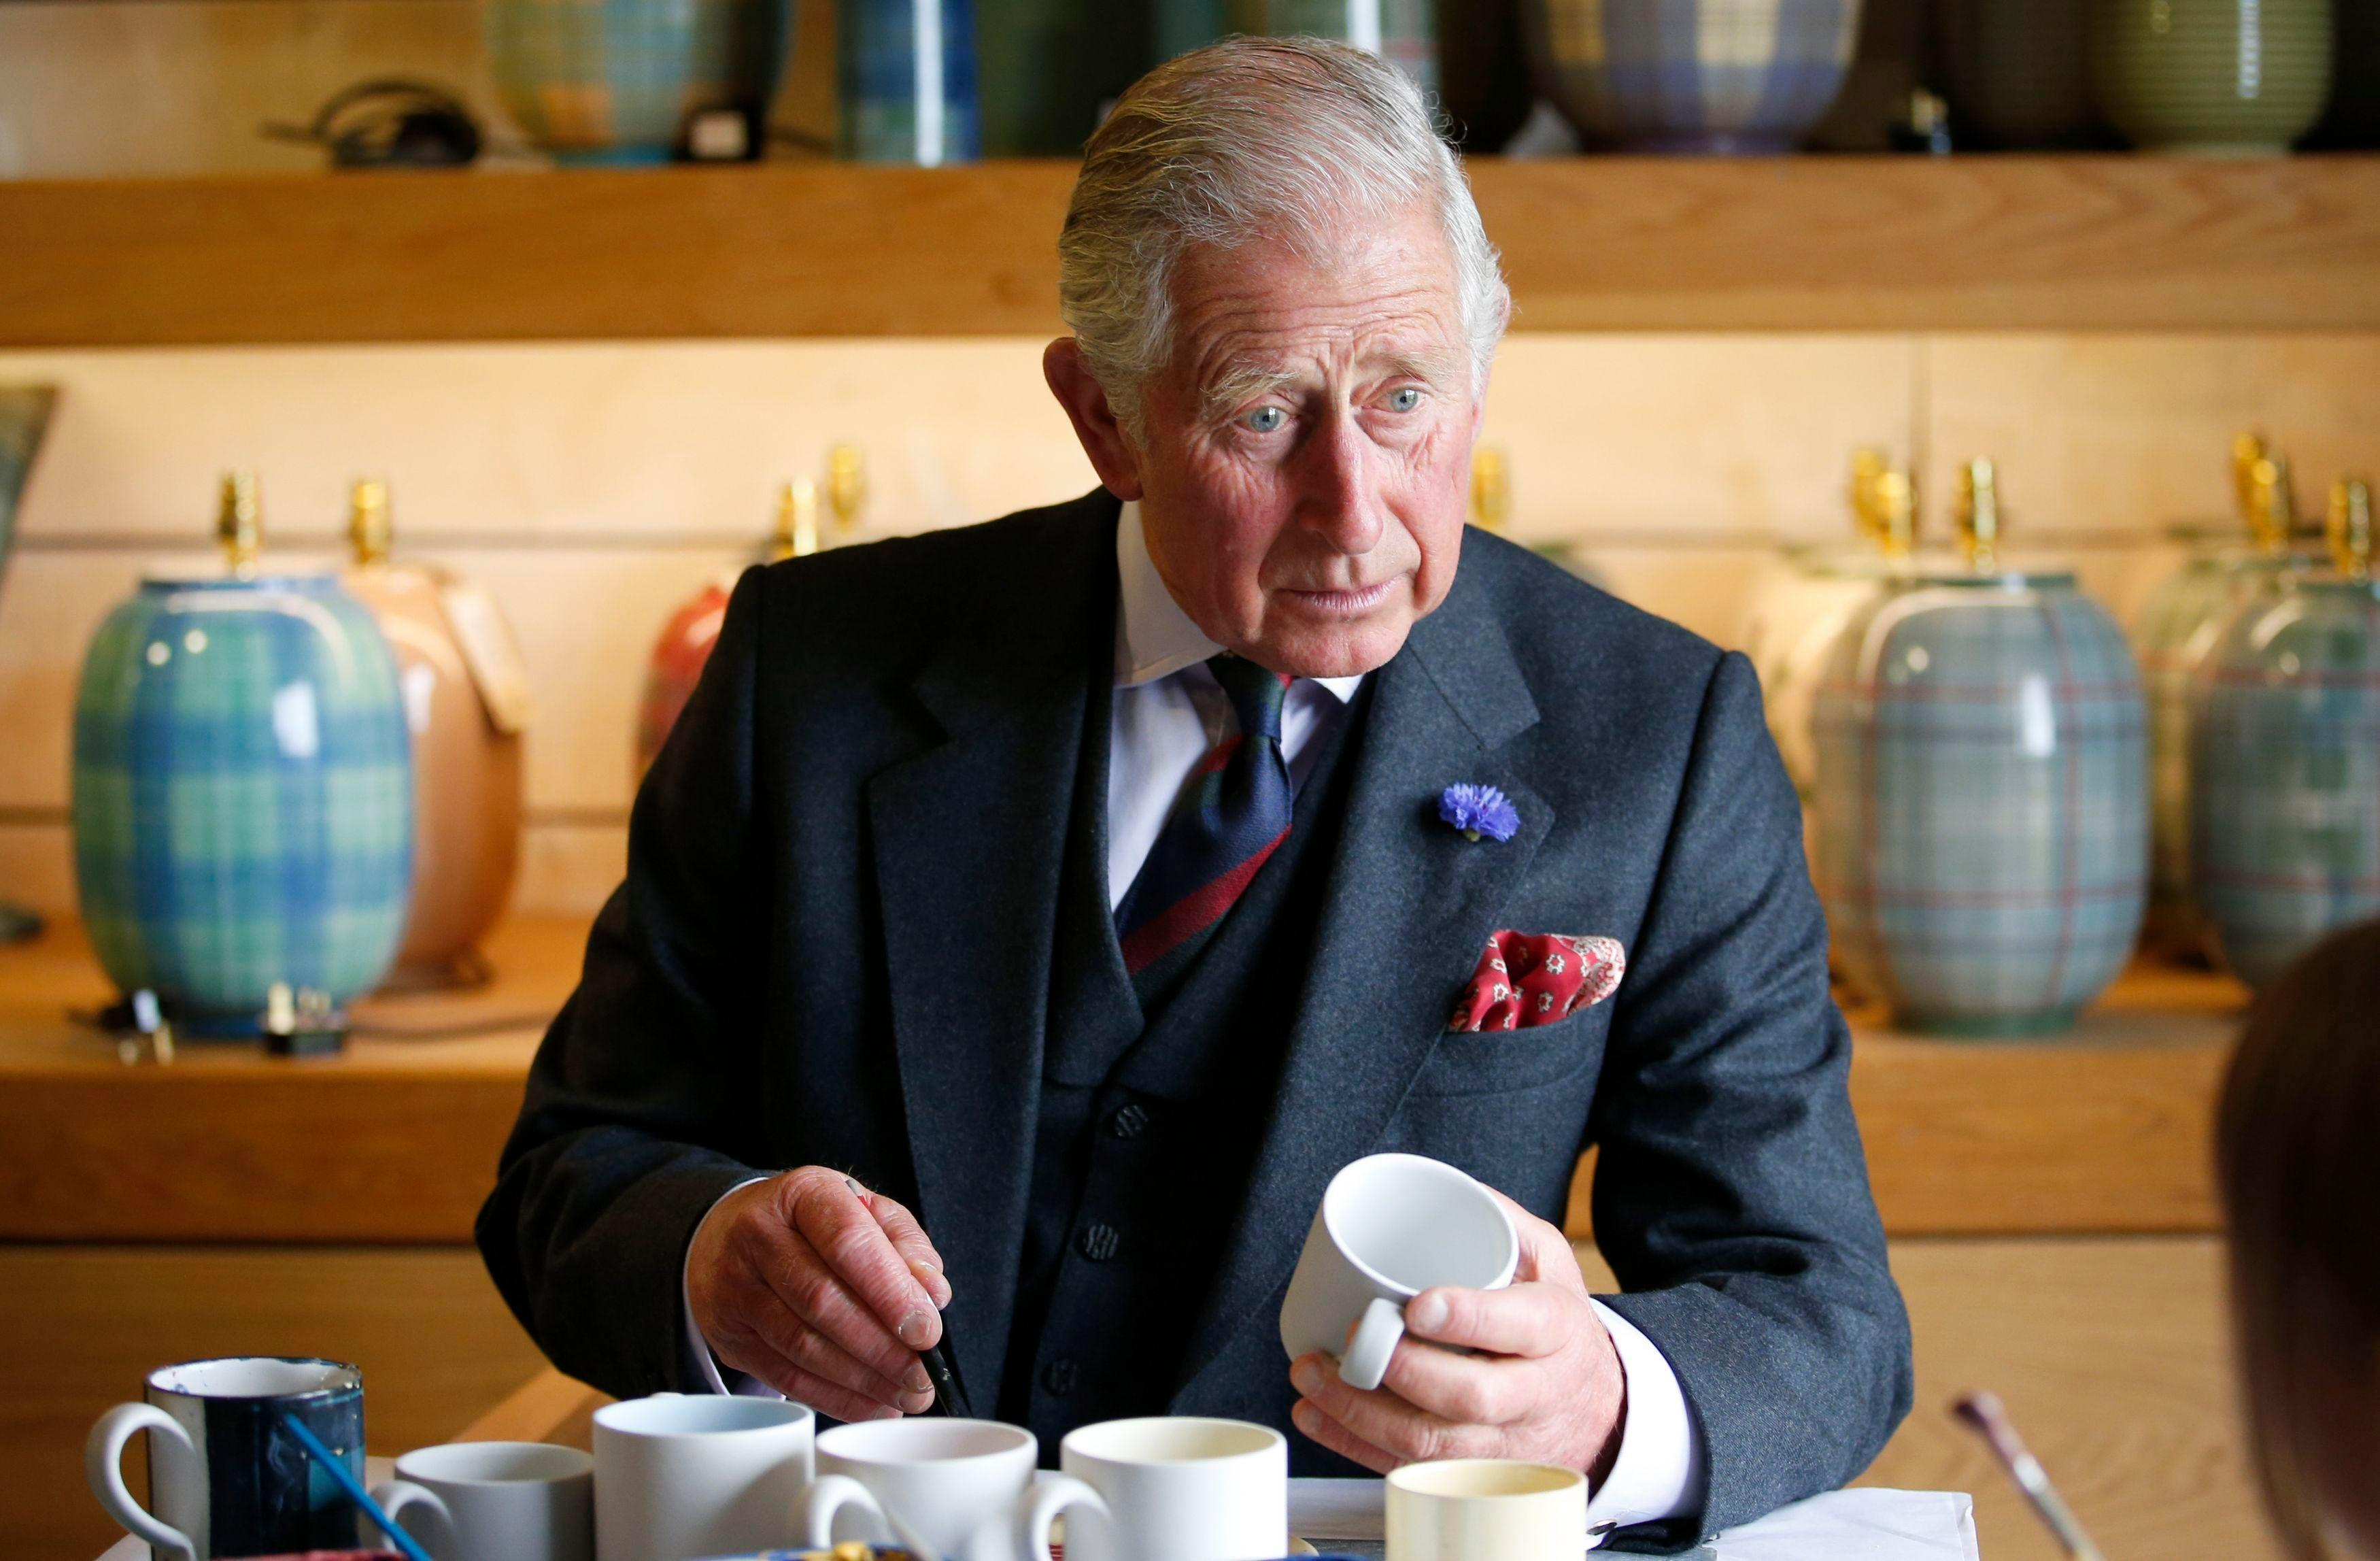 Prince Charles brings his own TOILET SEAT with him on Royal trips, new biography claims